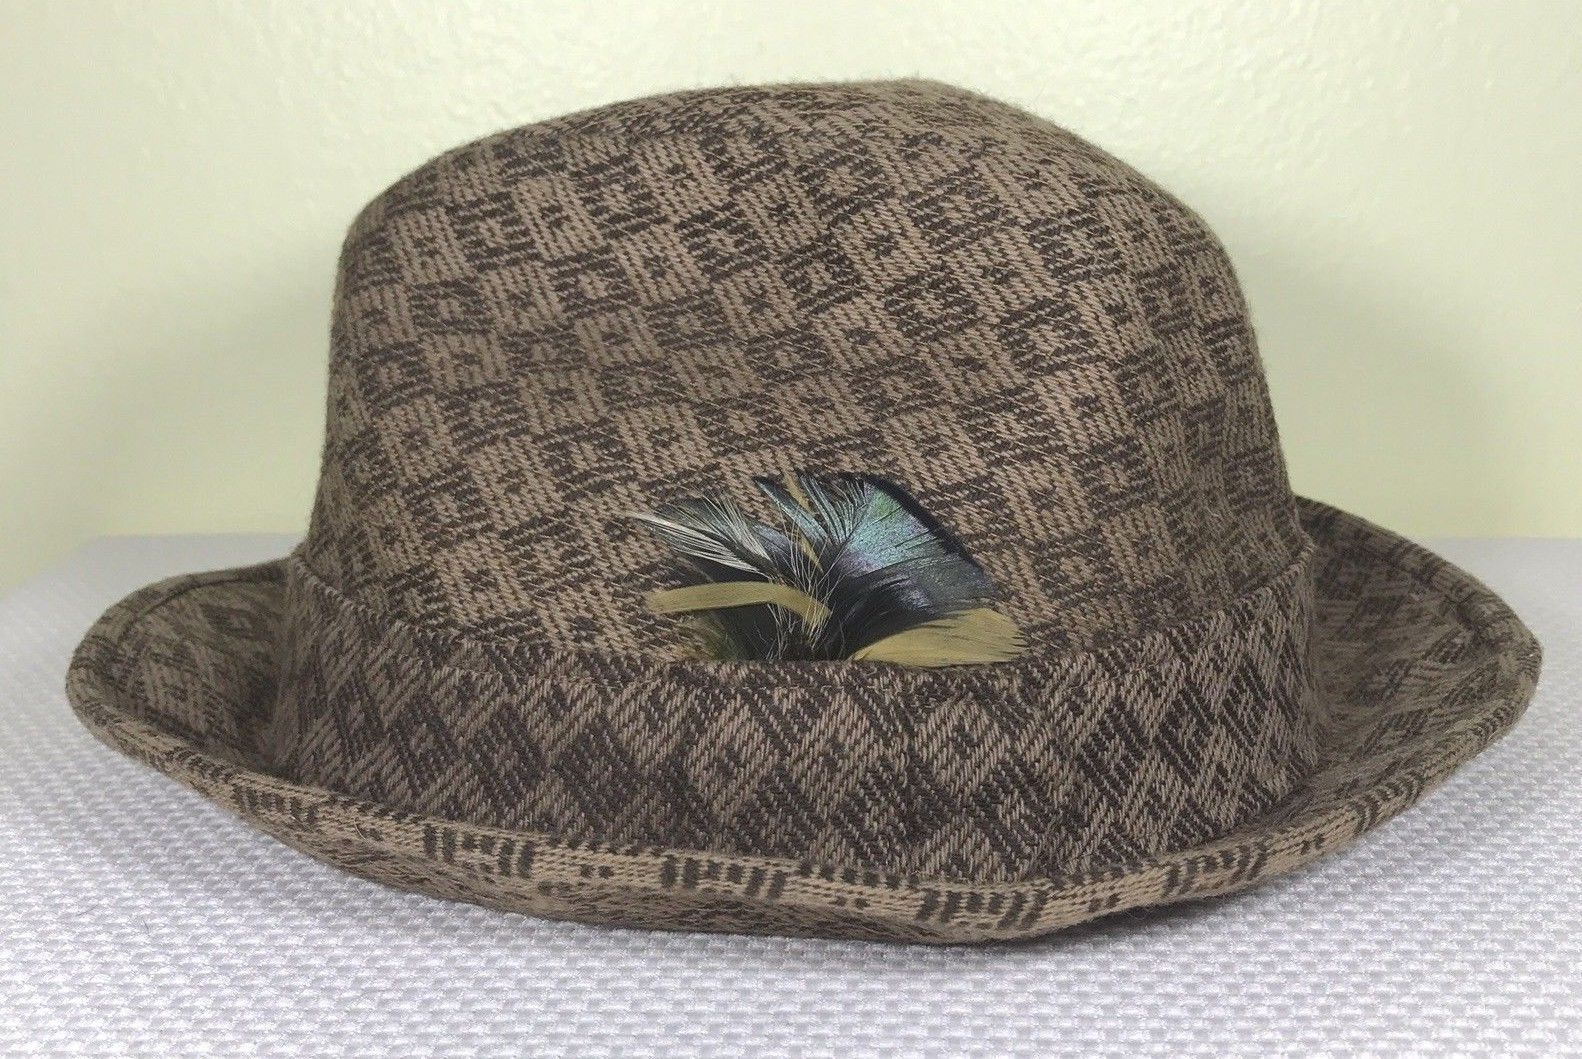 Resistol 7 1/4 Fedora 100% Wool Hat Brown Pattern Snap-Back Crushable Feather